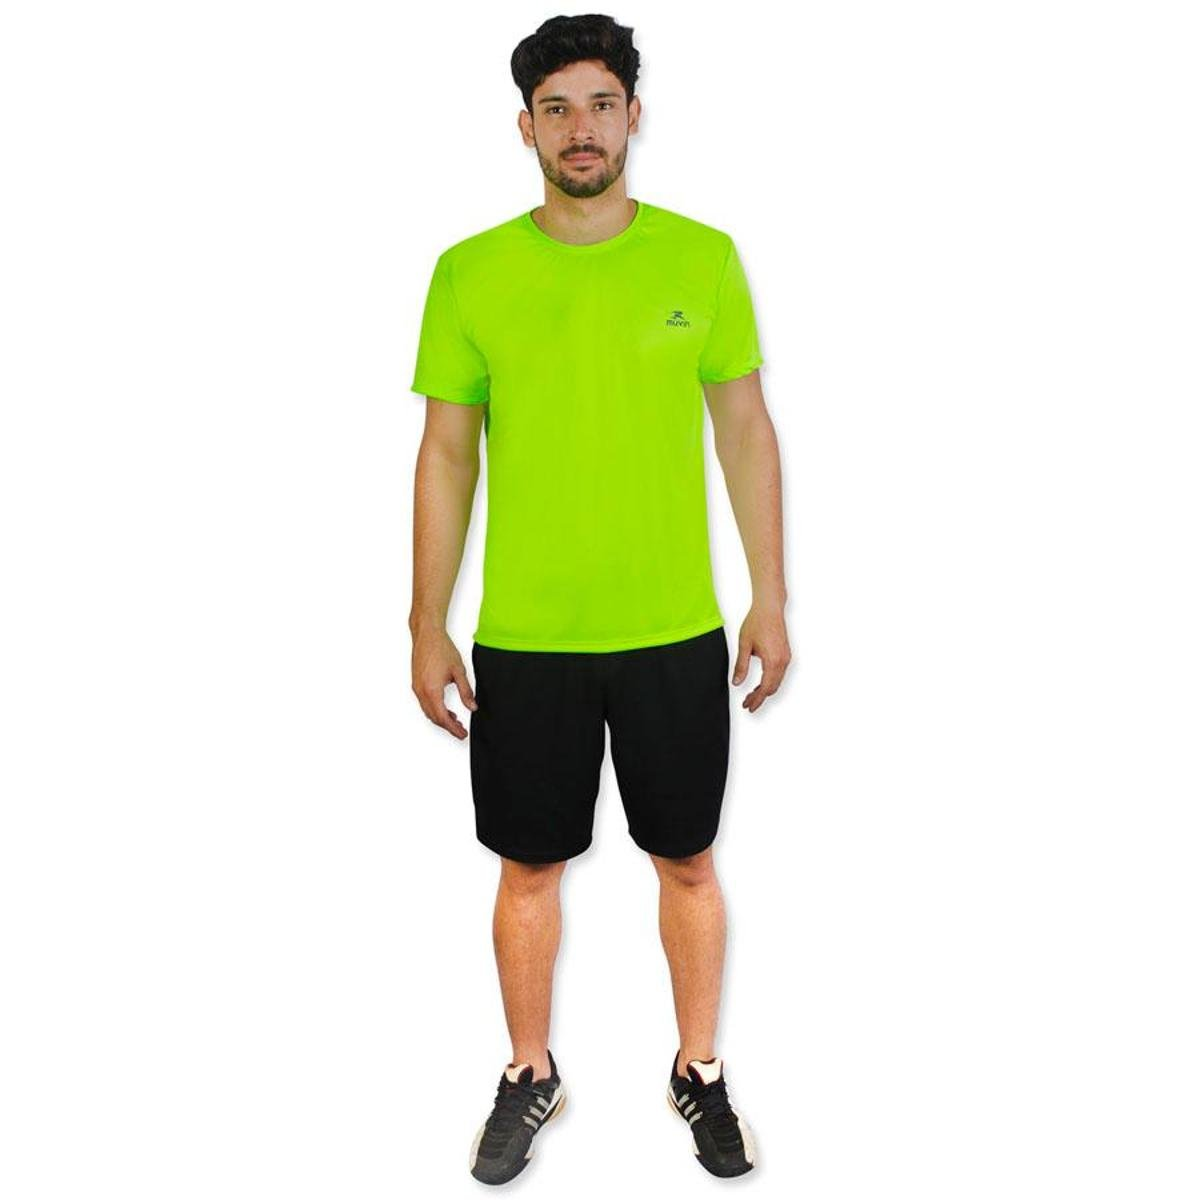 Muvin Verde Limão Camiseta Camiseta Dry Color Workout SS Color zwqZYO